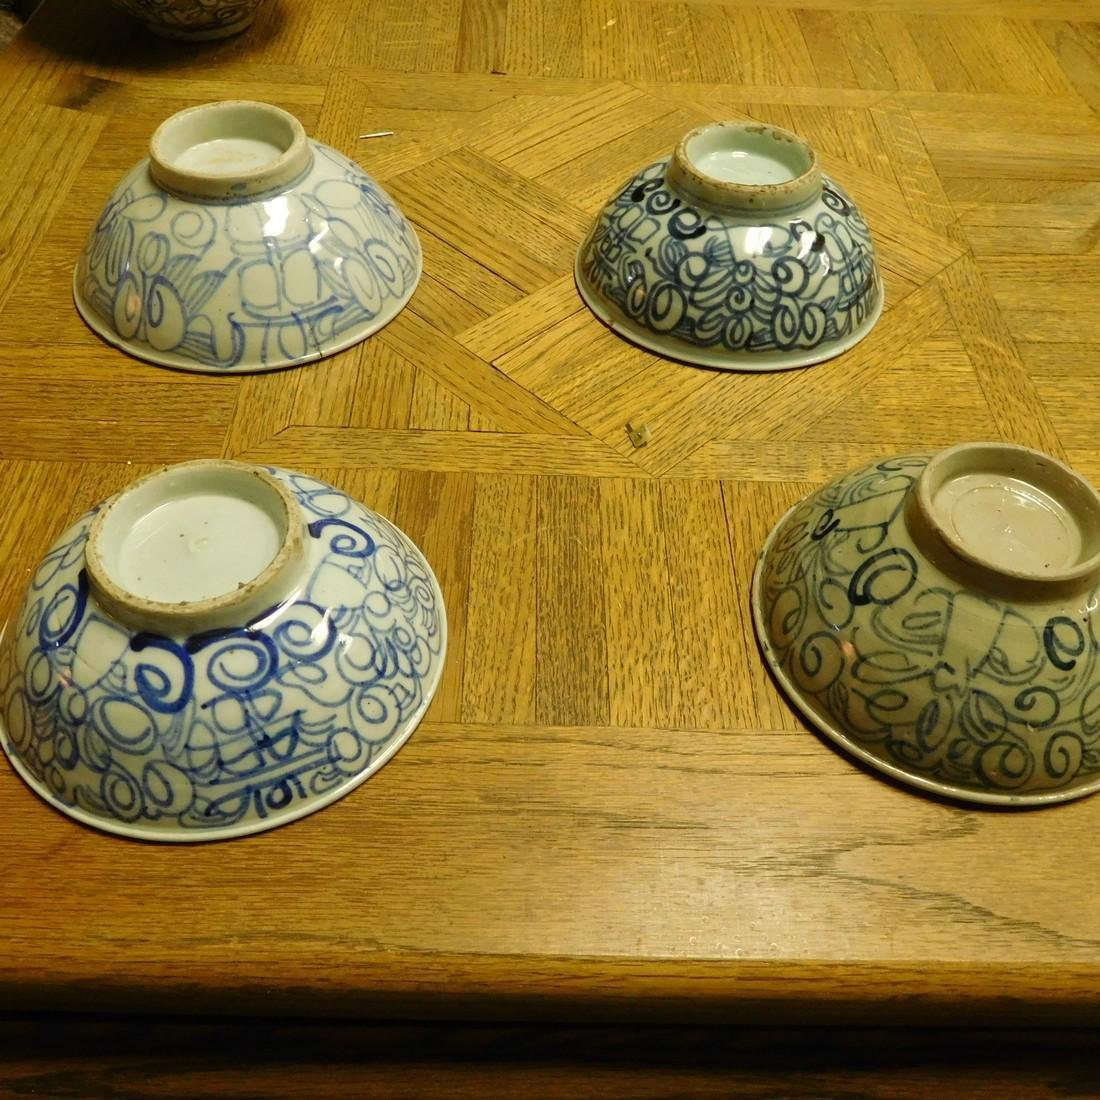 Set of (8) Chinese antique bowls - Qing Dynasty bowls